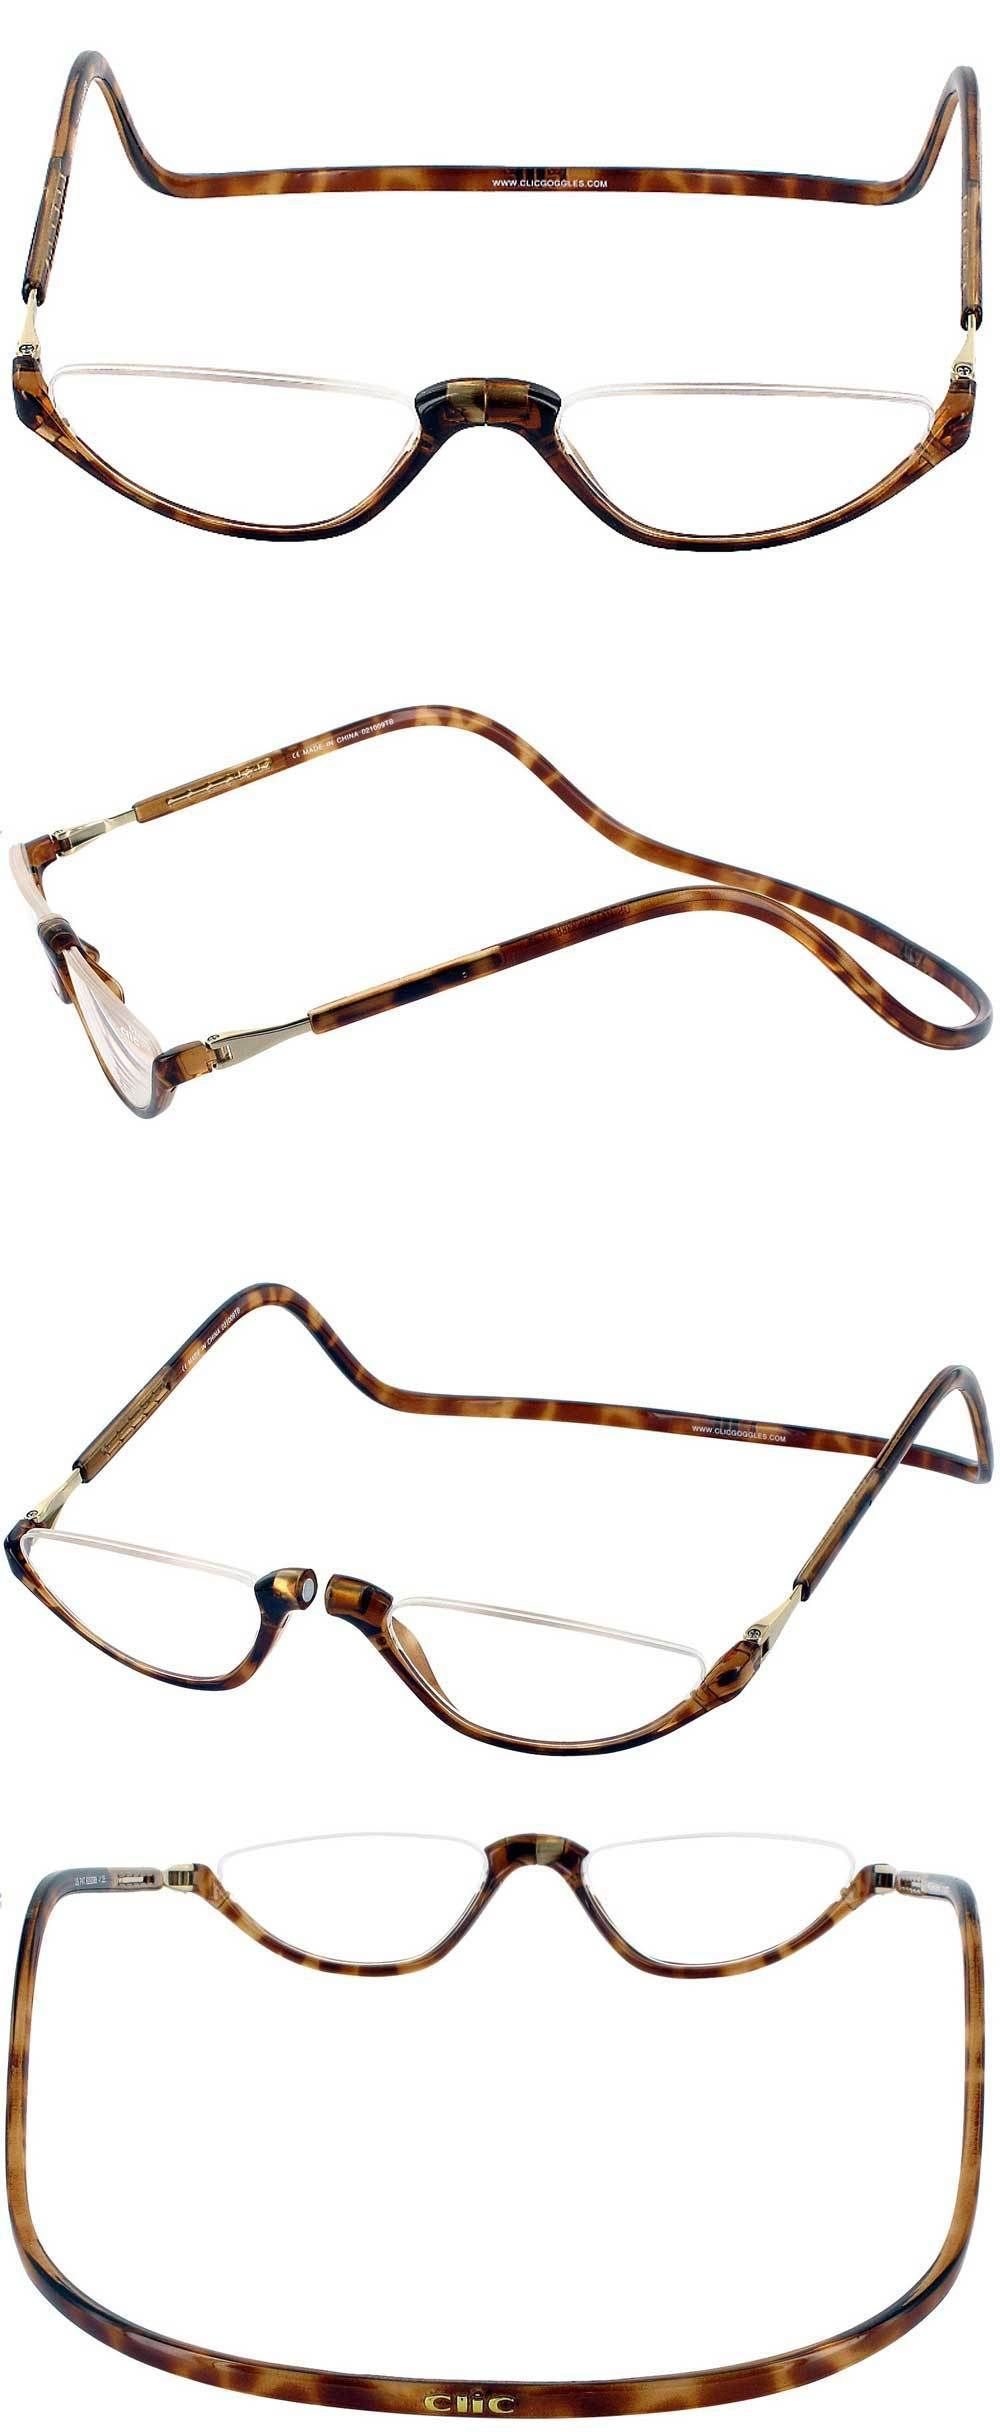 77a12effdf Reading Glasses  Clic Snap Magnetic Half Eye Neck-Hanging Readers  Tortoise  1.25 To 3.00 -  BUY IT NOW ONLY   34.95 on eBay!